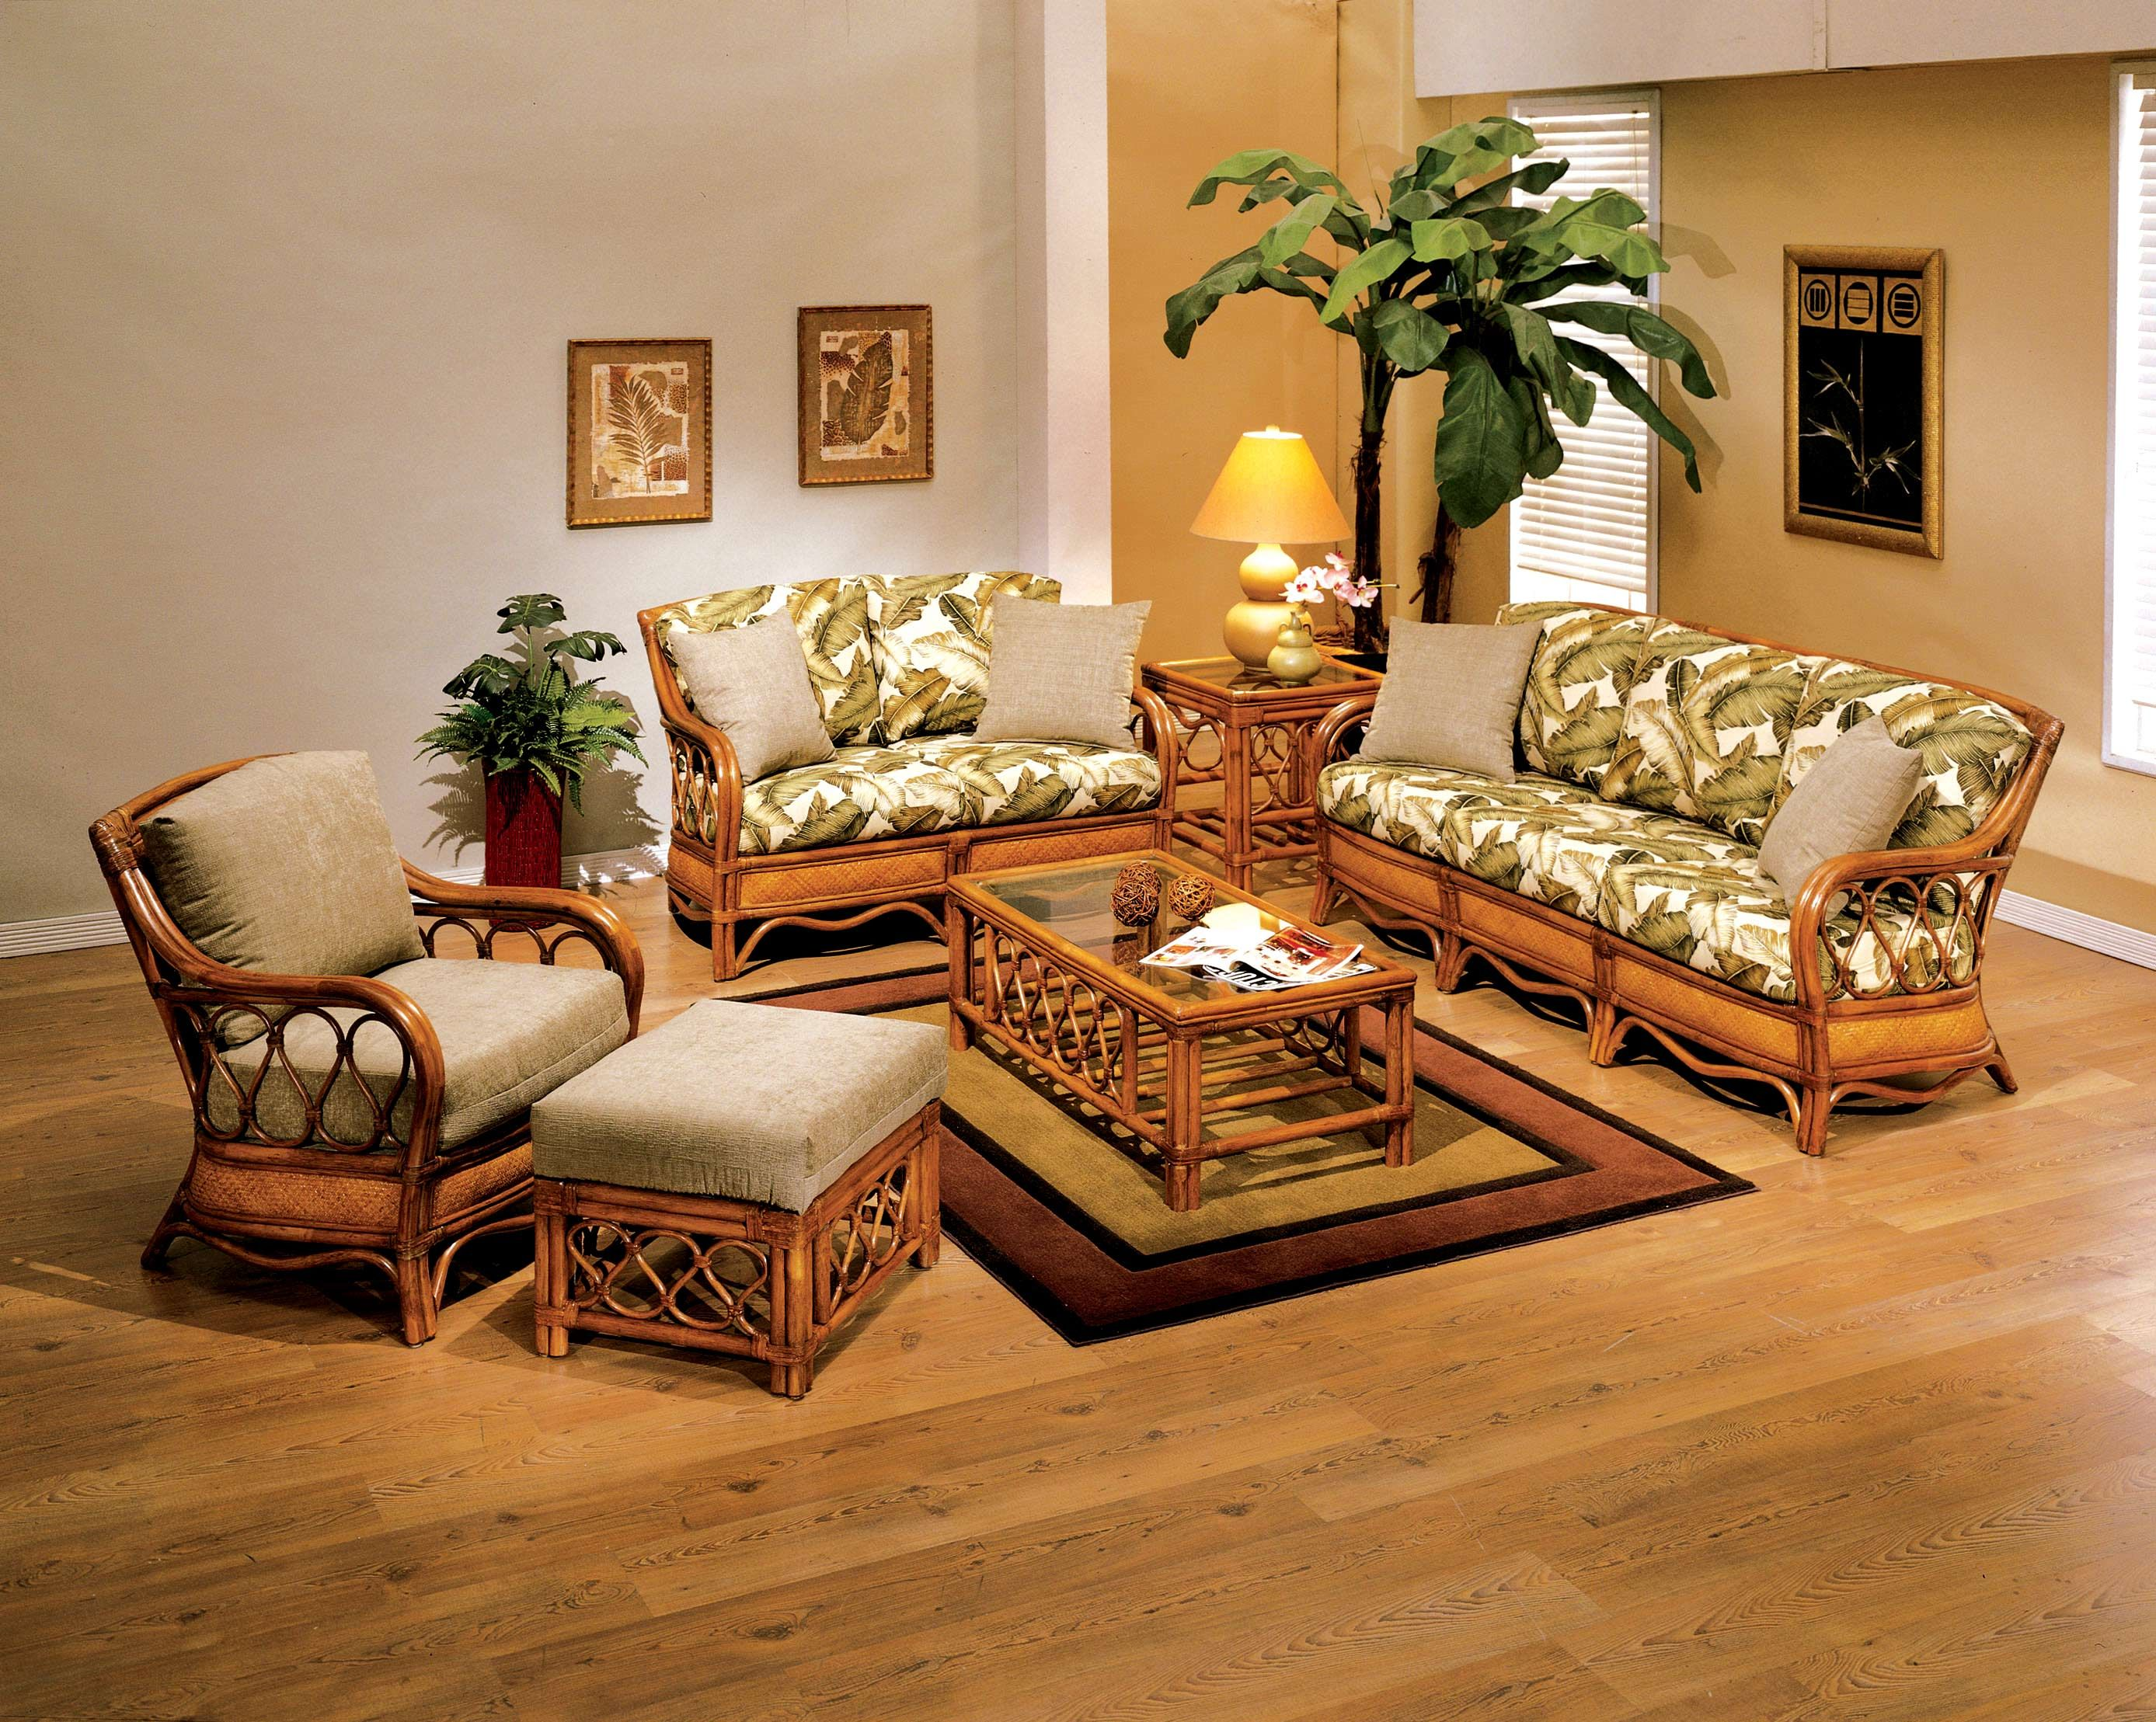 Living Room Wicker Furniture Rattan Wicker Bamboo Chairs Rattan Living Room Furniture